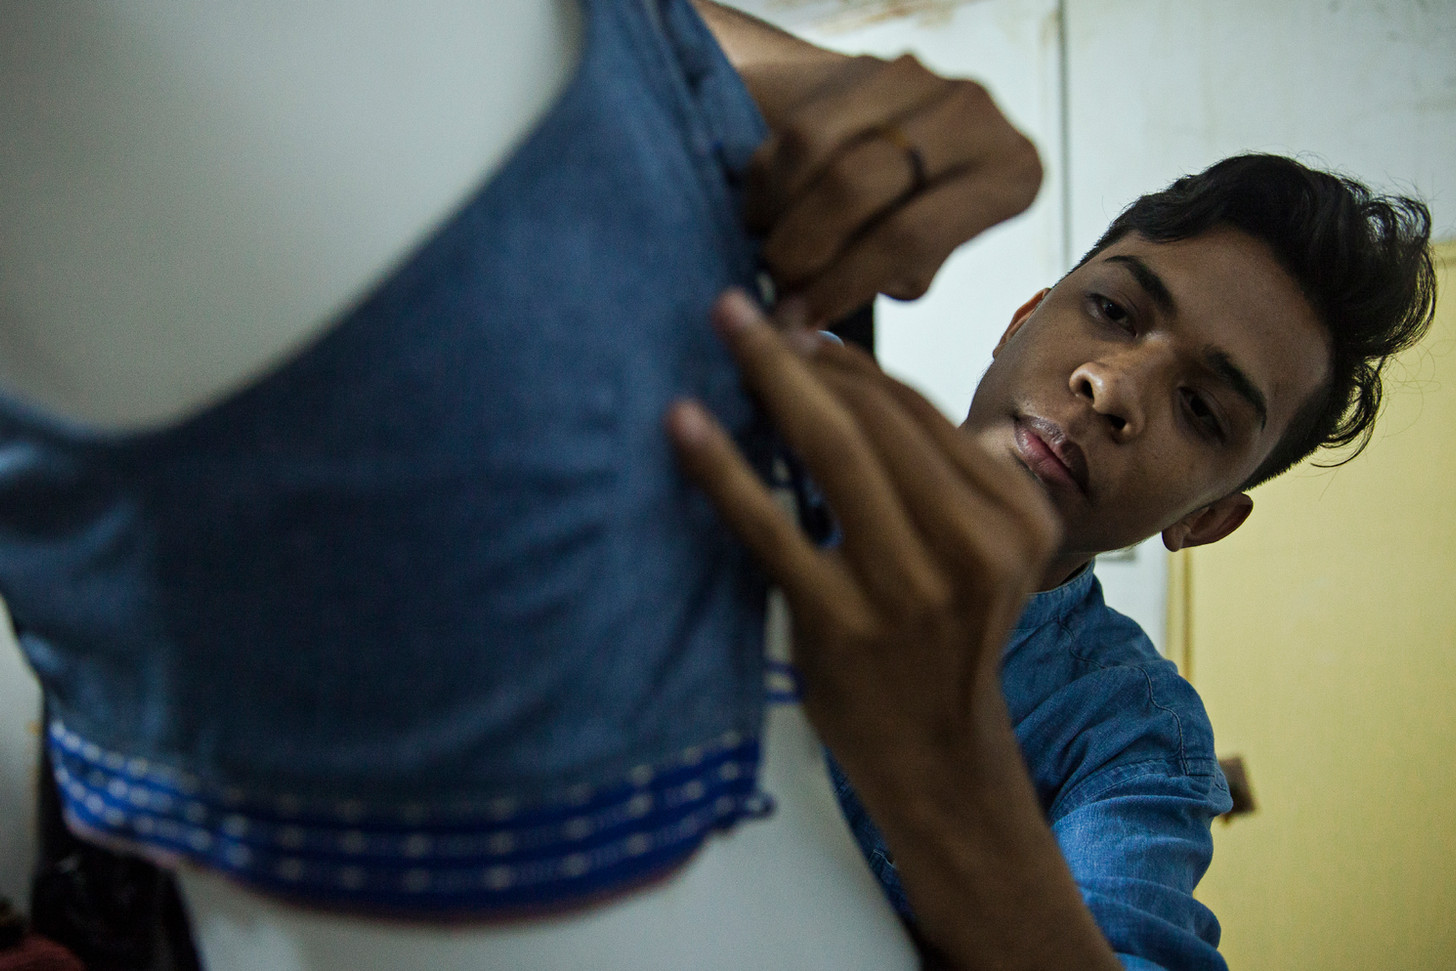 Domingos Barros sews a top at Look Dili Modeling Agency. Despite being a student in Business at Dili Institute of Technology, Barros' dream is to live as fashion designer. He said, he got the passion while growing up, because he used to make dresses for his dolls with materials like plastic. Barros said, making dresses for a model agency makes him feel great as he works together with Timorese models and use Timorese textile.